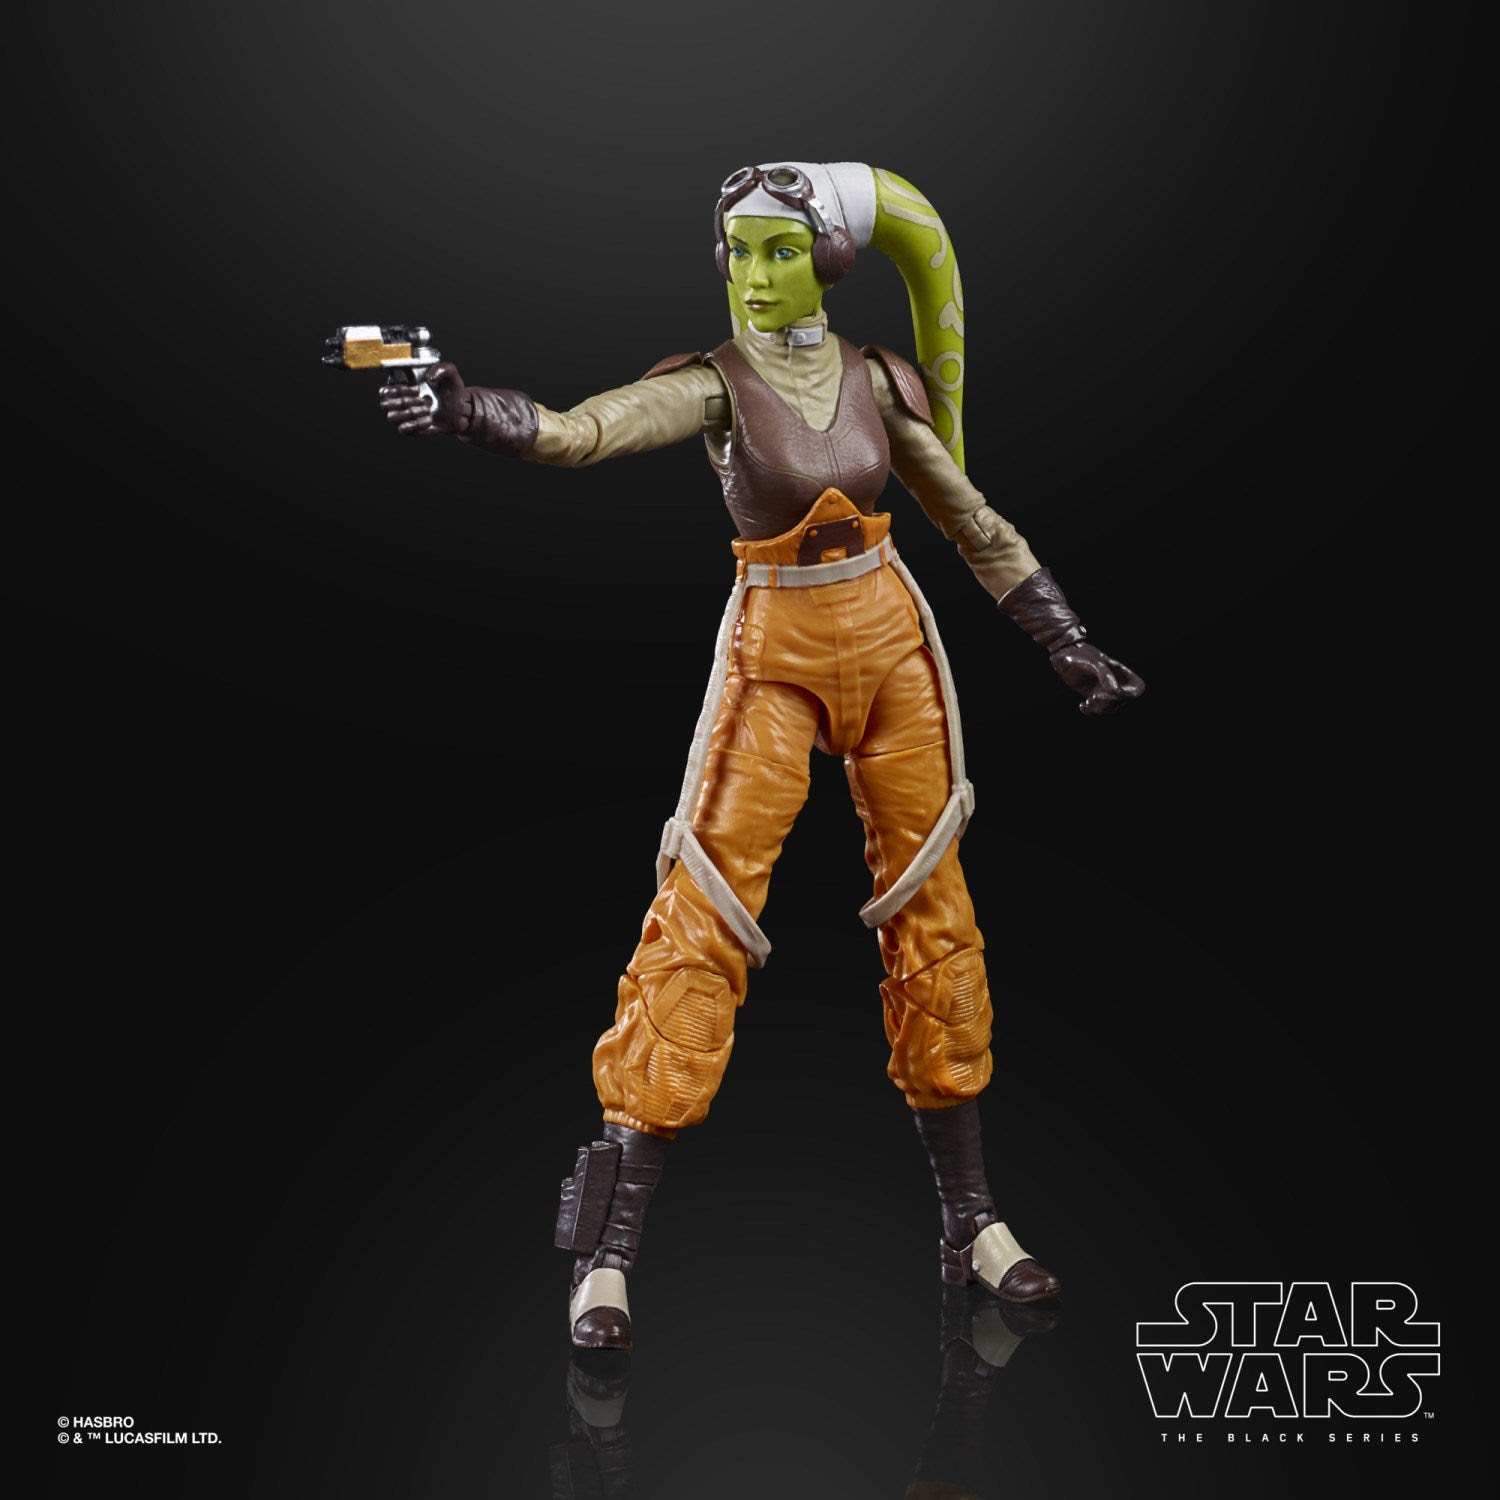 Image of Star Wars The Black Series Rebels Hera Syndulla 6-Inch Action Figure